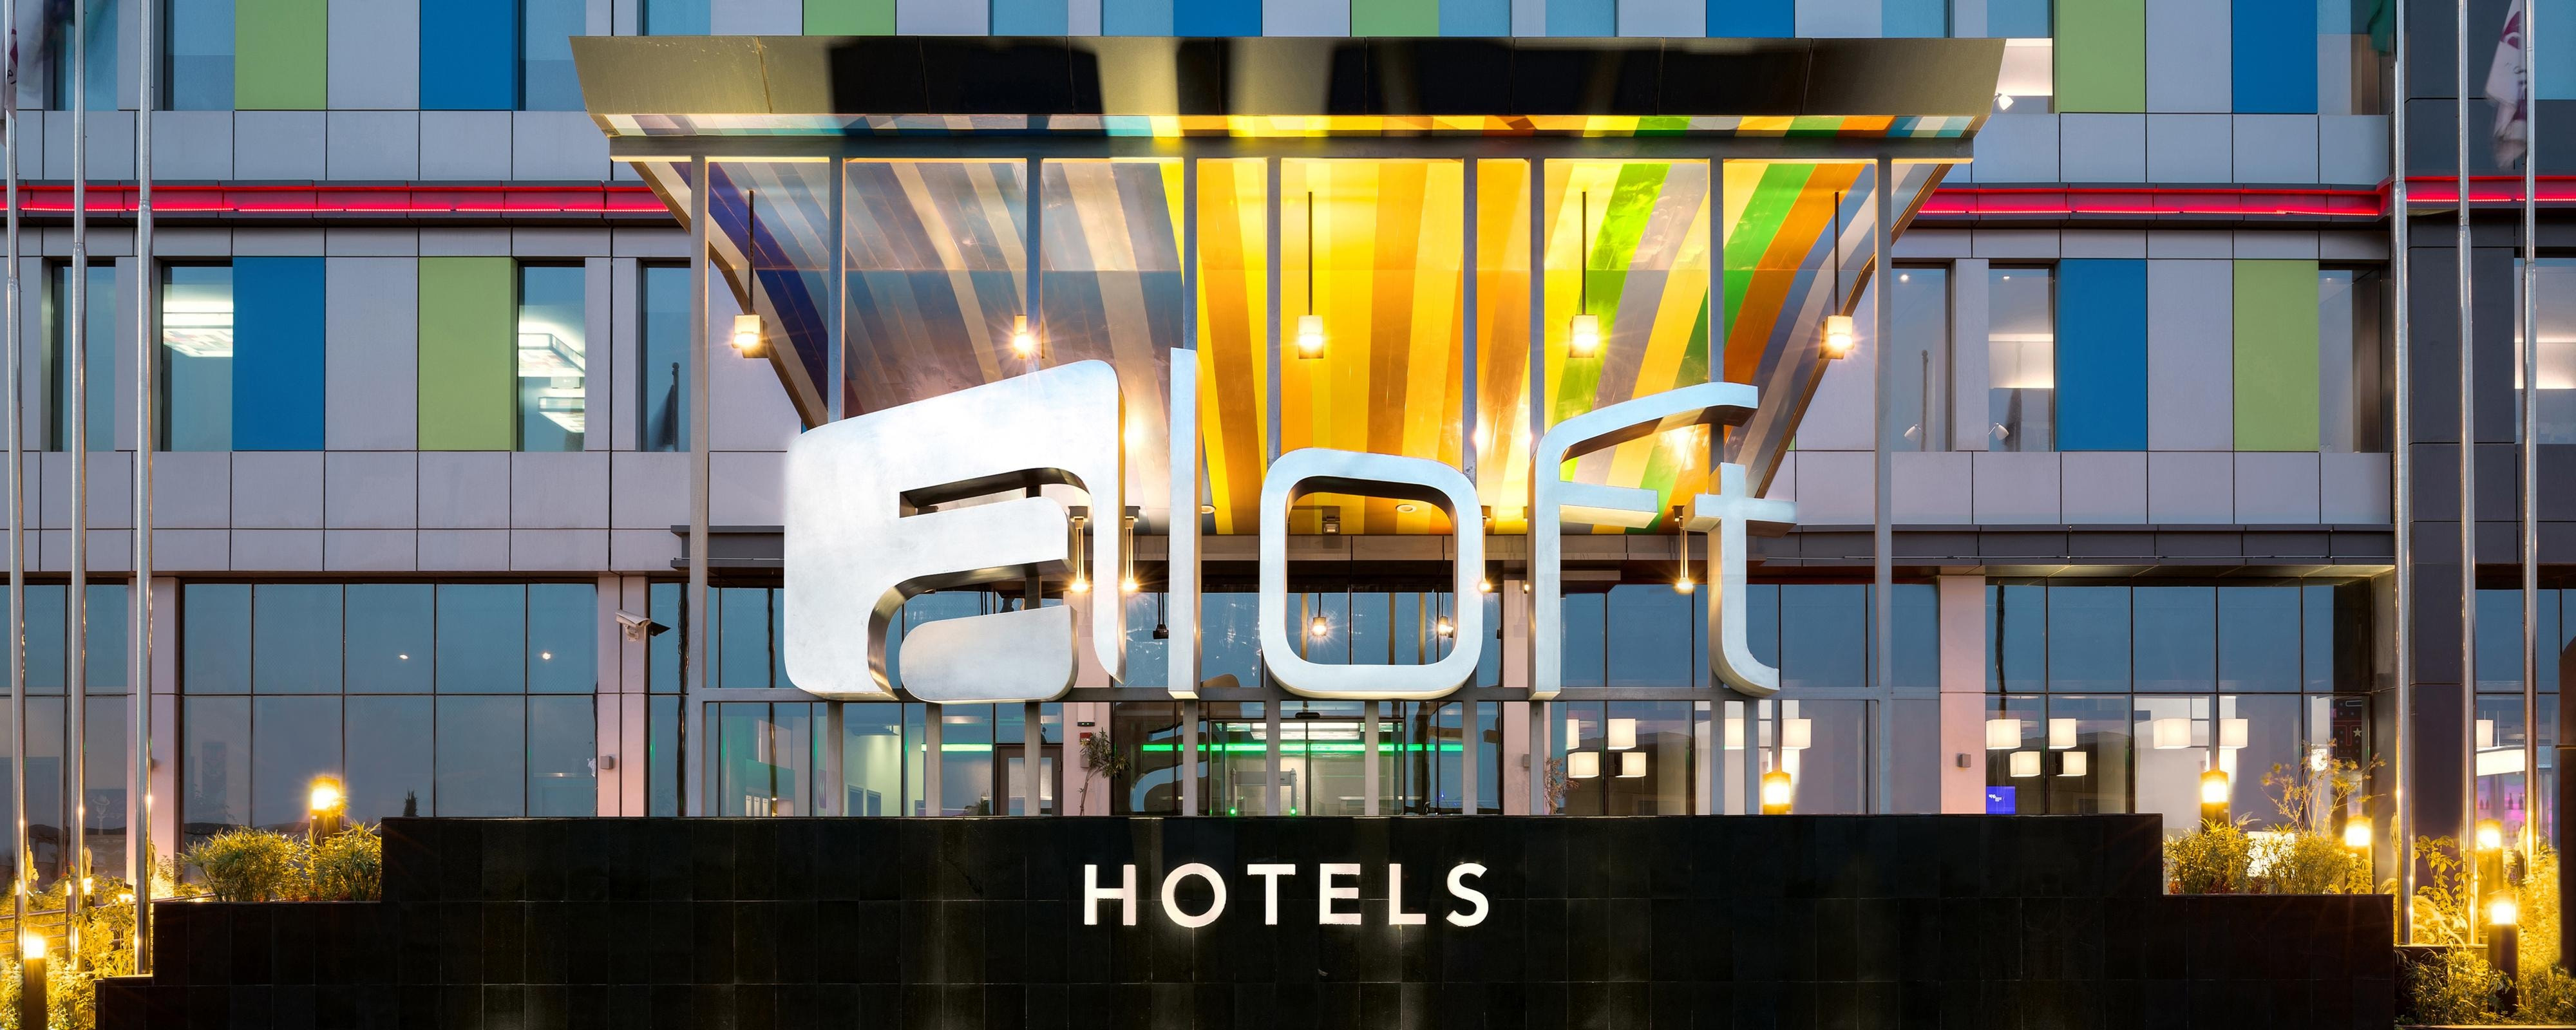 Aloft Hotel photography